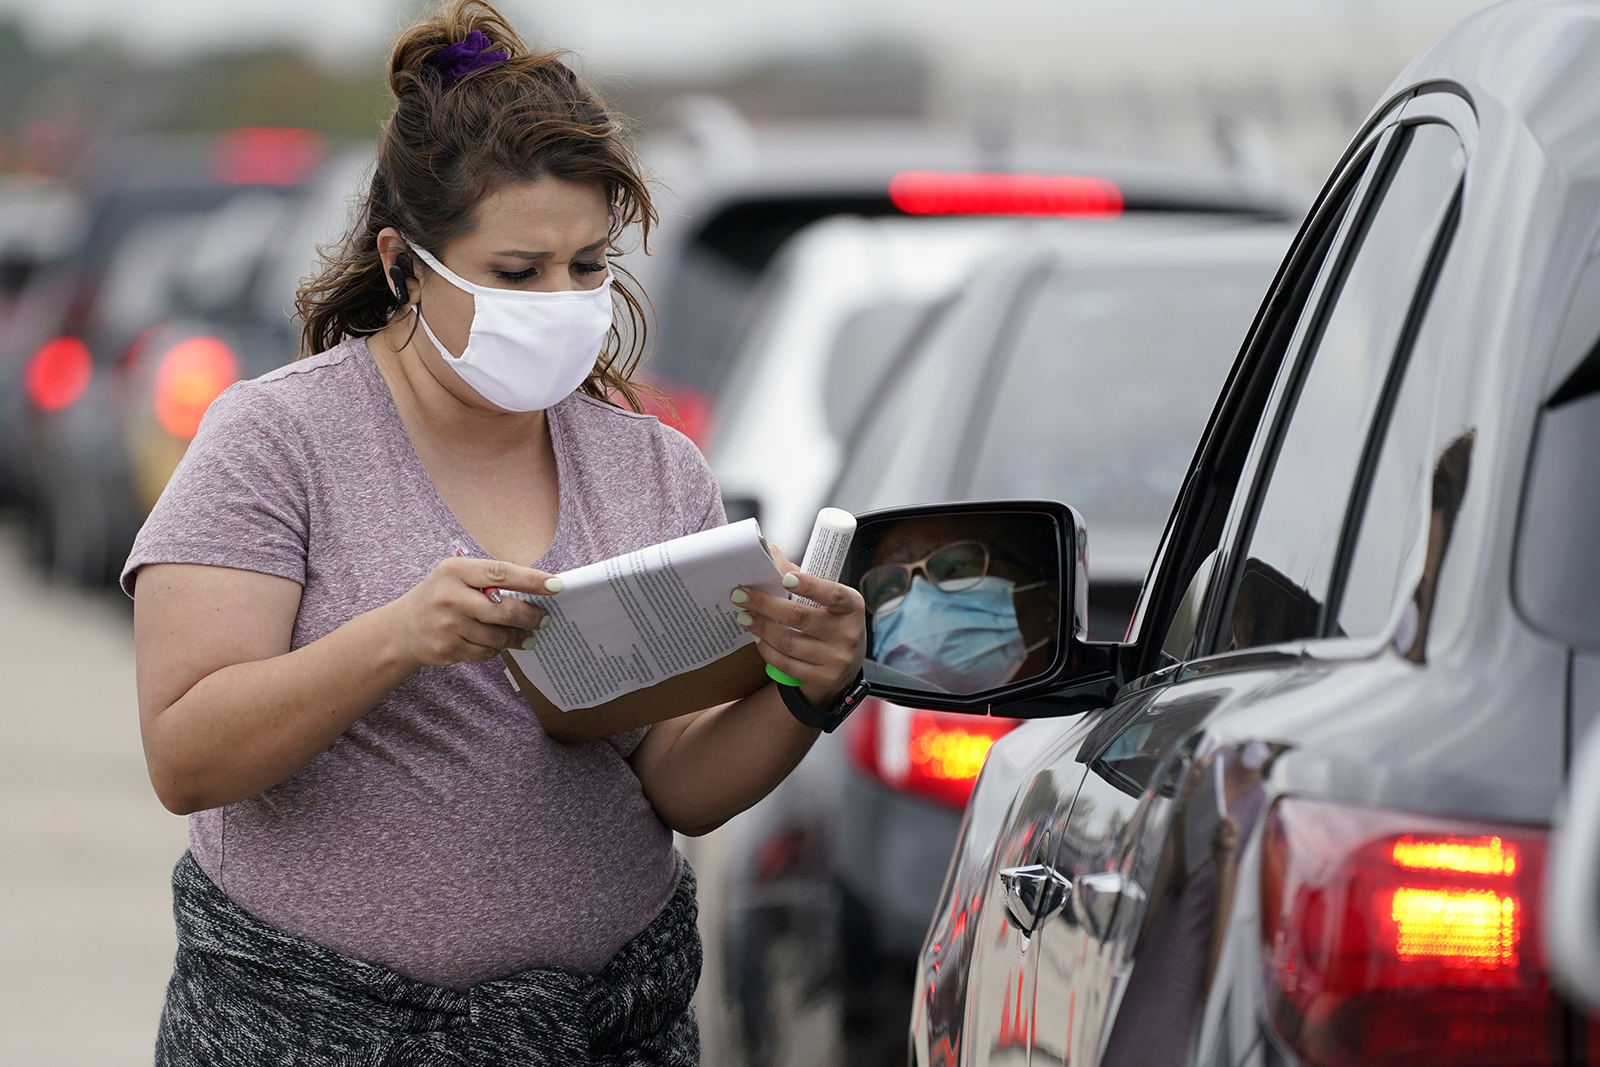 Volunteer Daisy Valdivia, left, of Forth Worth, Texas, takes down information from a person waiting in line to receive food items during a Tarrant Area Food Bank mobile pantry distribution event in Arlington, Texas, Friday, Nov. 20, 2020. Thanksgiving holiday food items were distributed to over 5,000 families during the event that took place in a parking lot outside AT&T Stadium. (AP Photo/Tony Gutierrez)